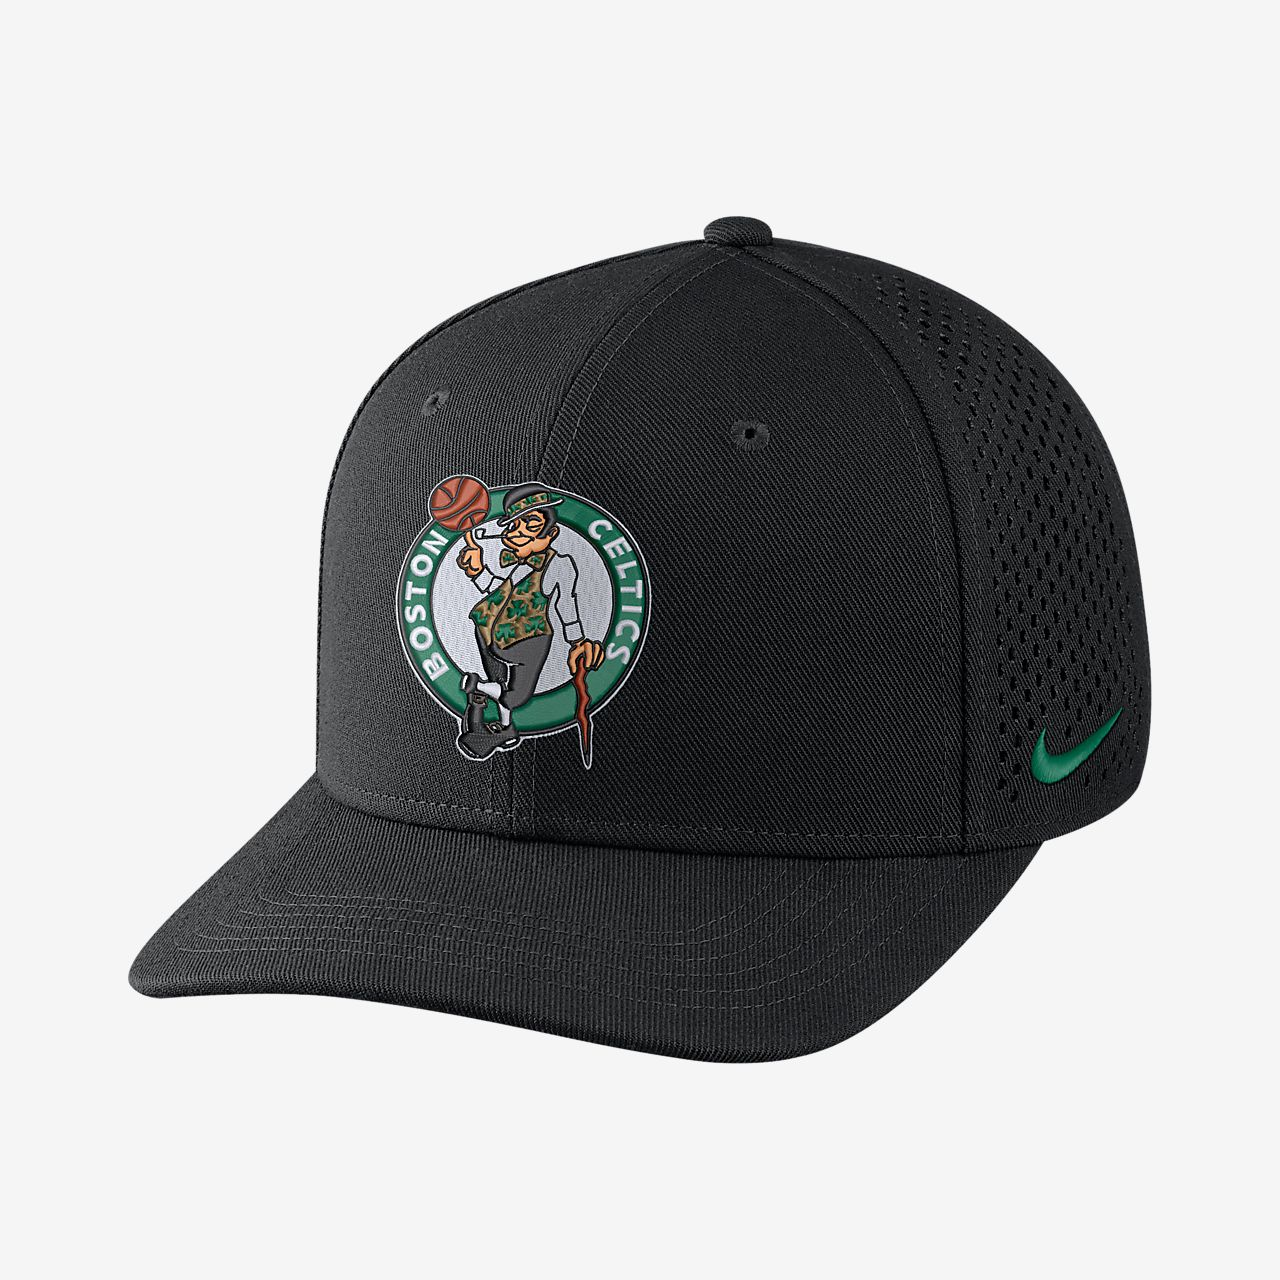 Boston Celtics Nike AeroBill Classic99 Unisex Adjustable NBA Hat